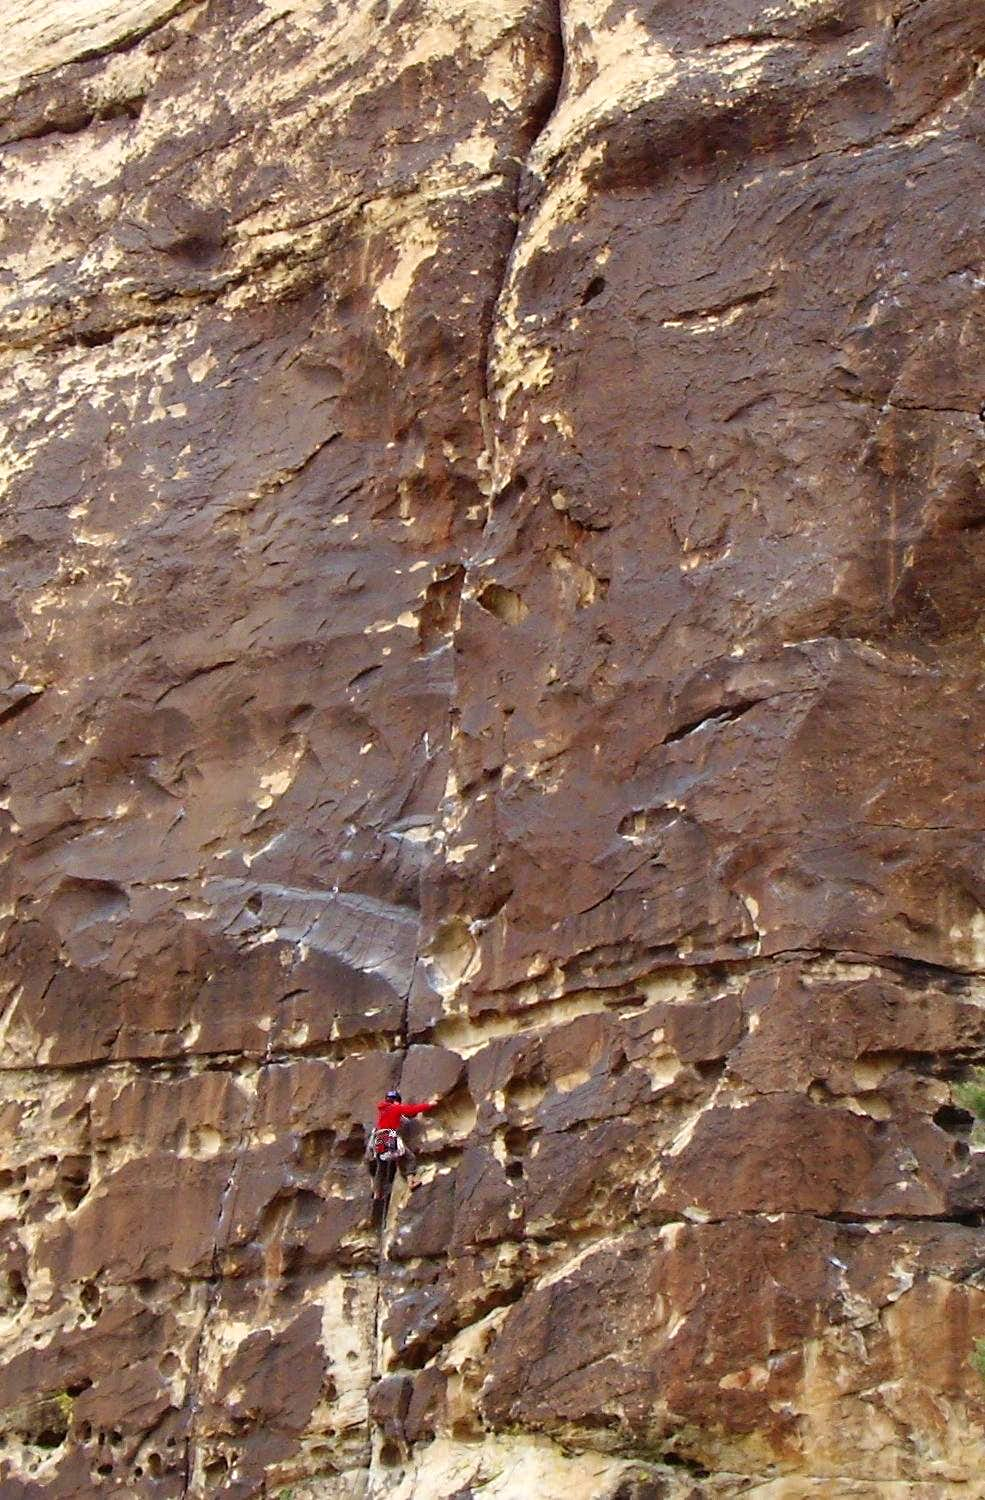 Ragged Edges Area, 5.5-5.12d